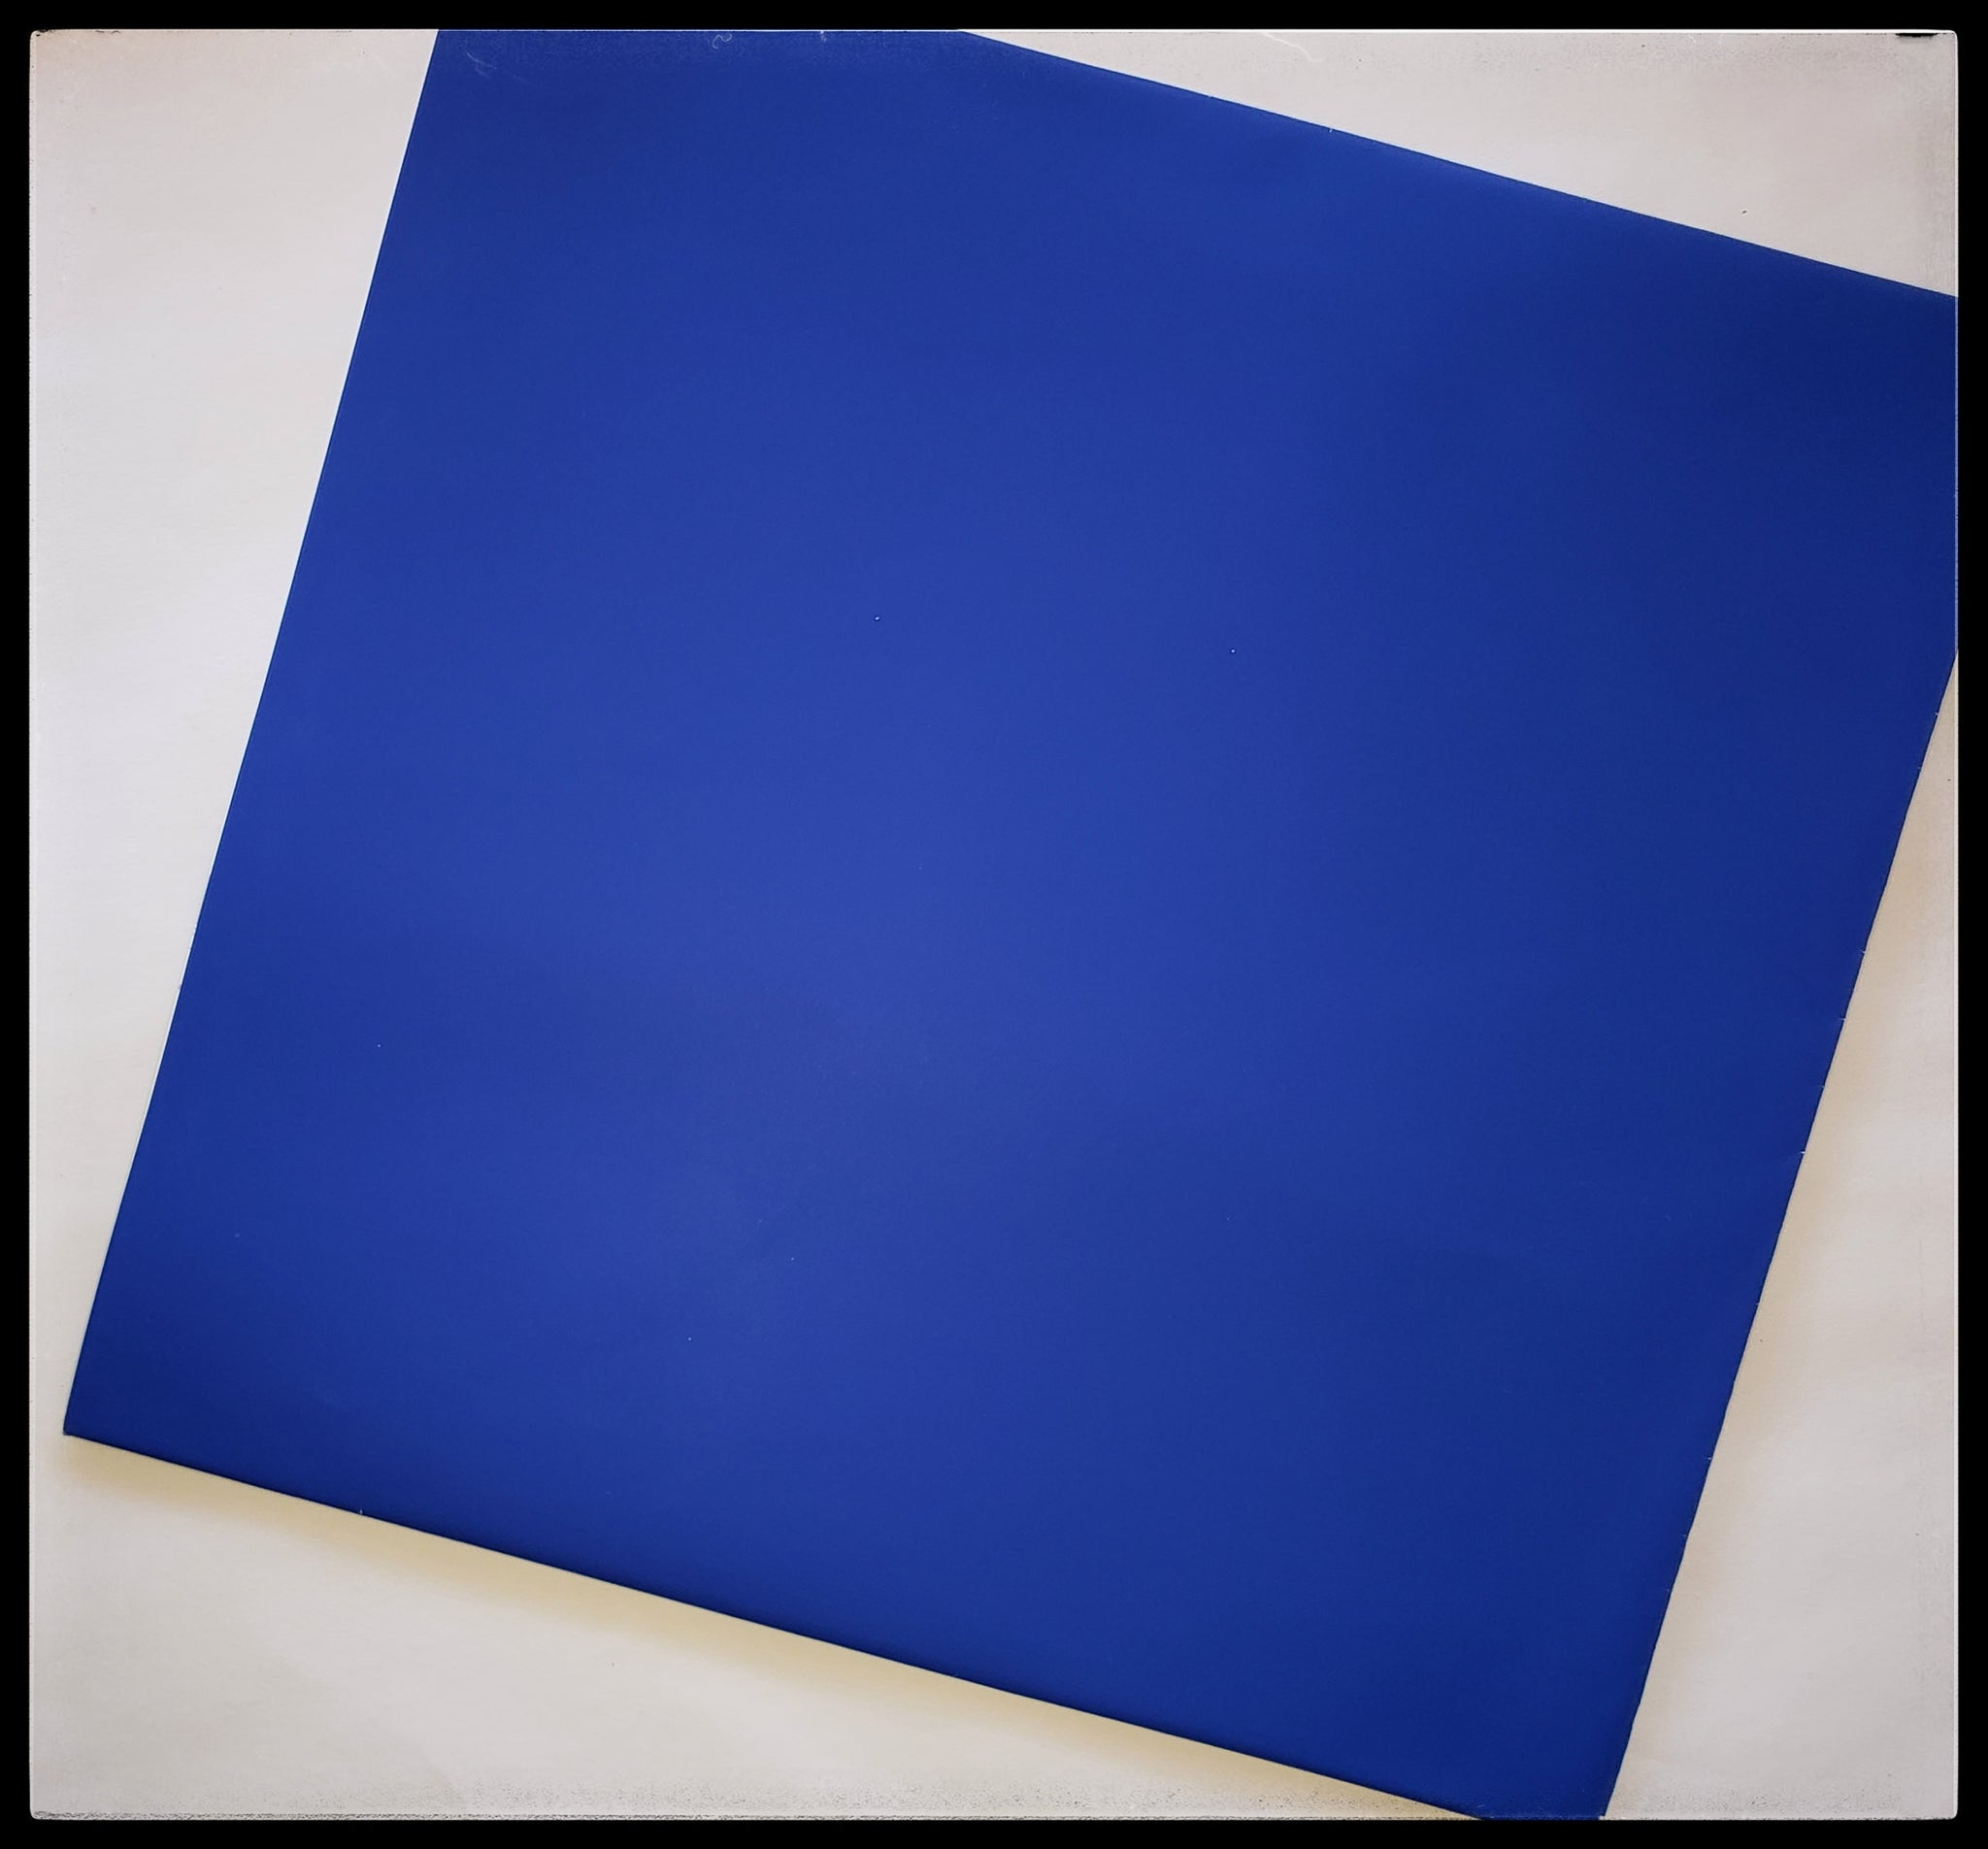 "Royal Blue   2 Sheets in a pack   20"" x 30"" (51cm x 76cm)   Arrives folded in package 10"" x 10""   Gift wrap contains 100% recycled fiber ADA The Gilded Page Santa Fe New Mexico"